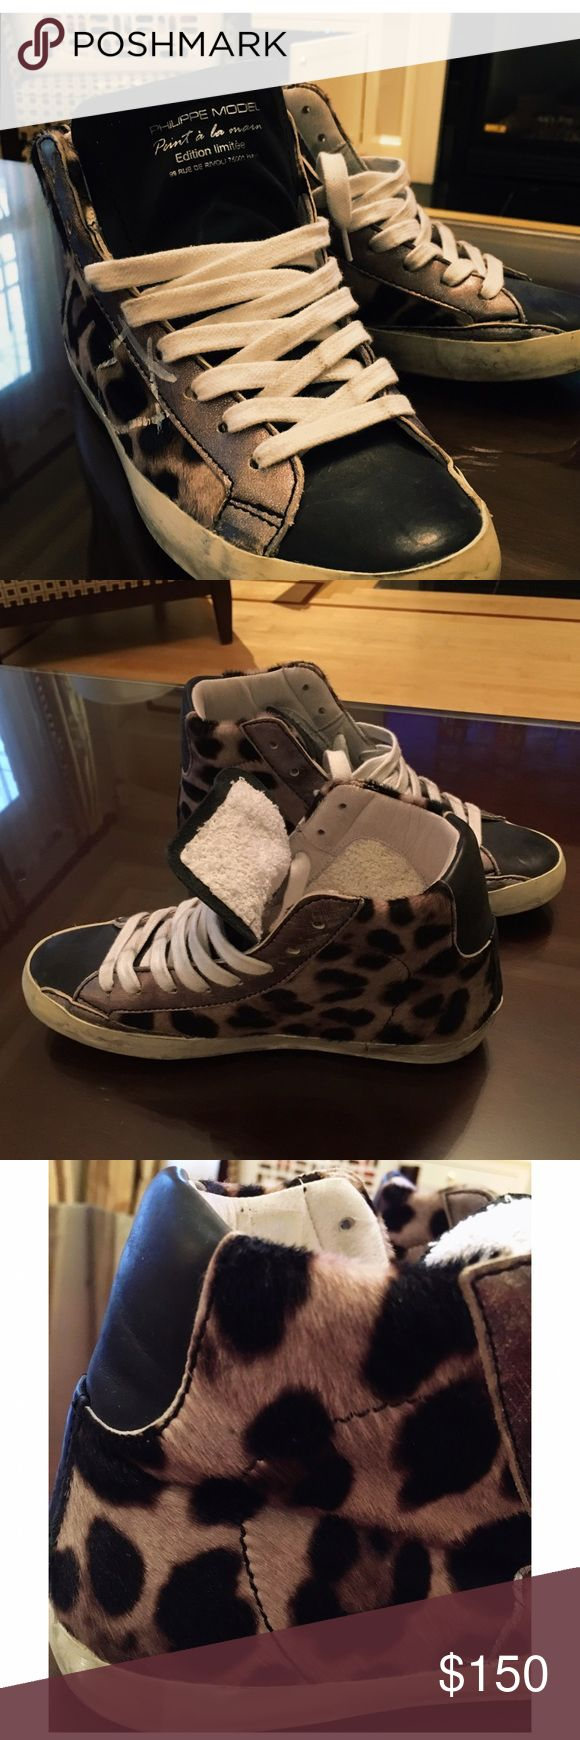 Philippe Model sneakers with wedge heel Philippe Model, leopard print sneakers with wedges heel. Worn only once, they are meant to look slightly distressed. Philippe Model Shoes Sneakers